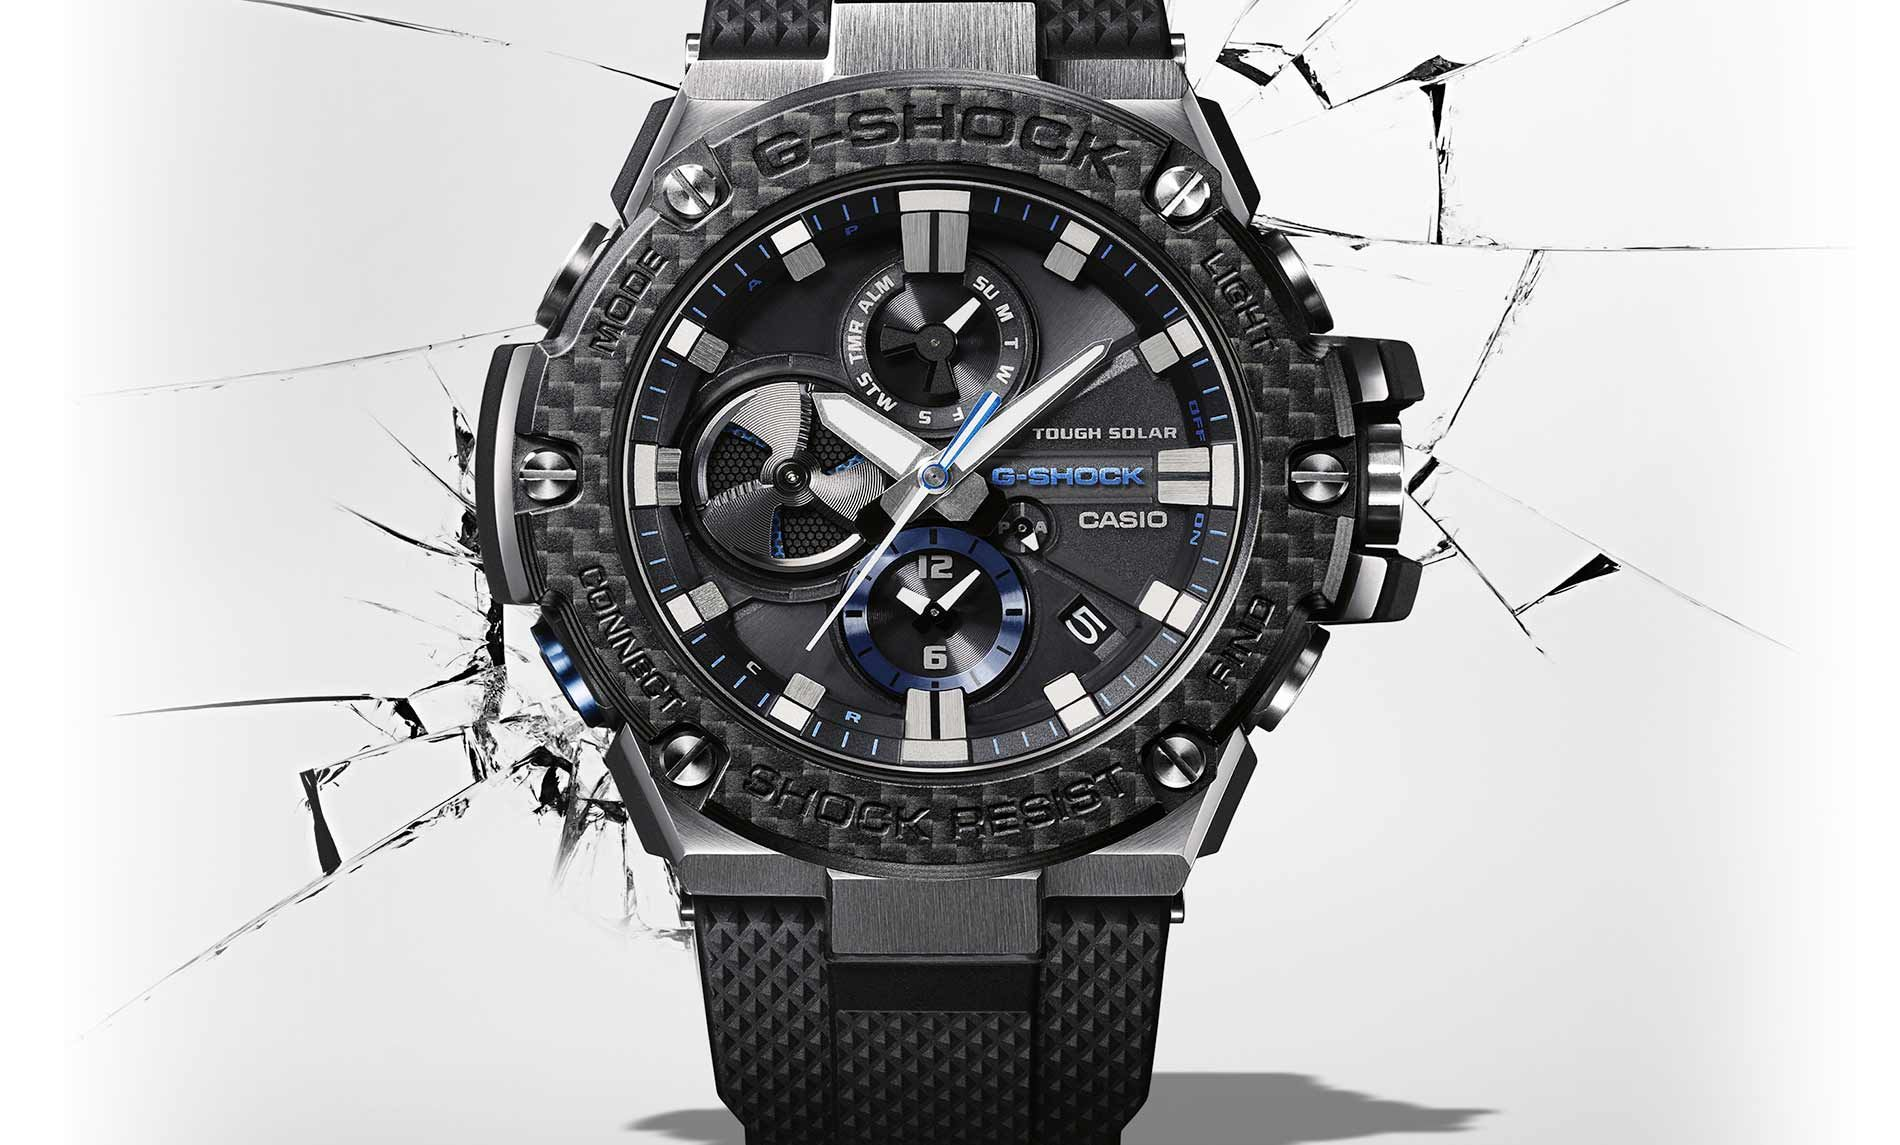 Analog And Digital Stainless Steel Watches G Steel By G Shock Watches For Men Luxury Watches For Men Mens Watches Leather